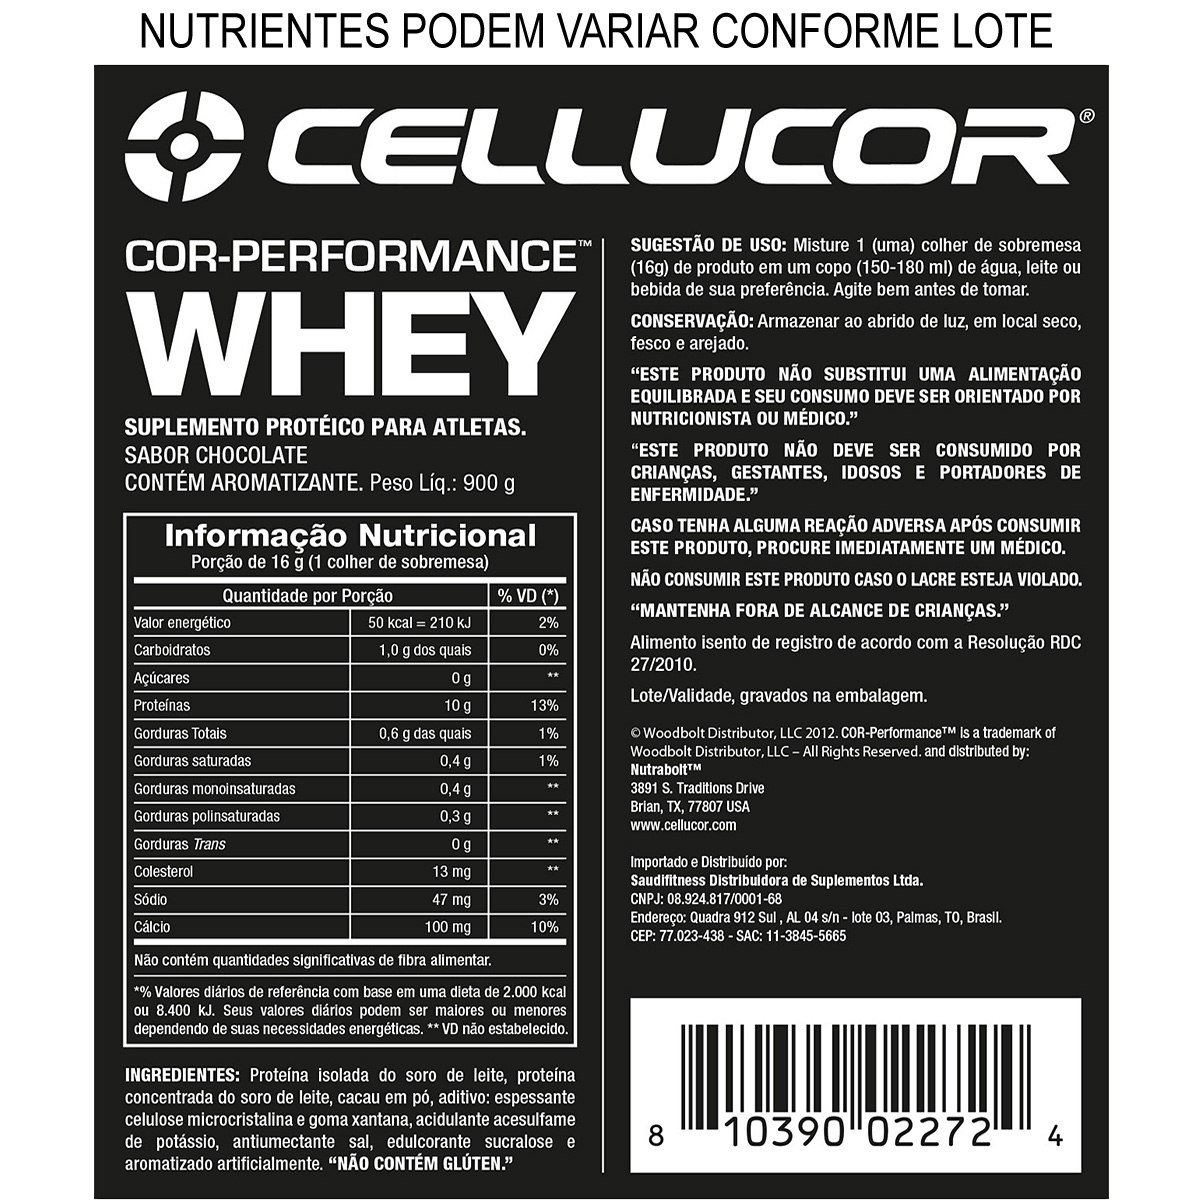 Cellucor Cor Performance Whey Protein 900g